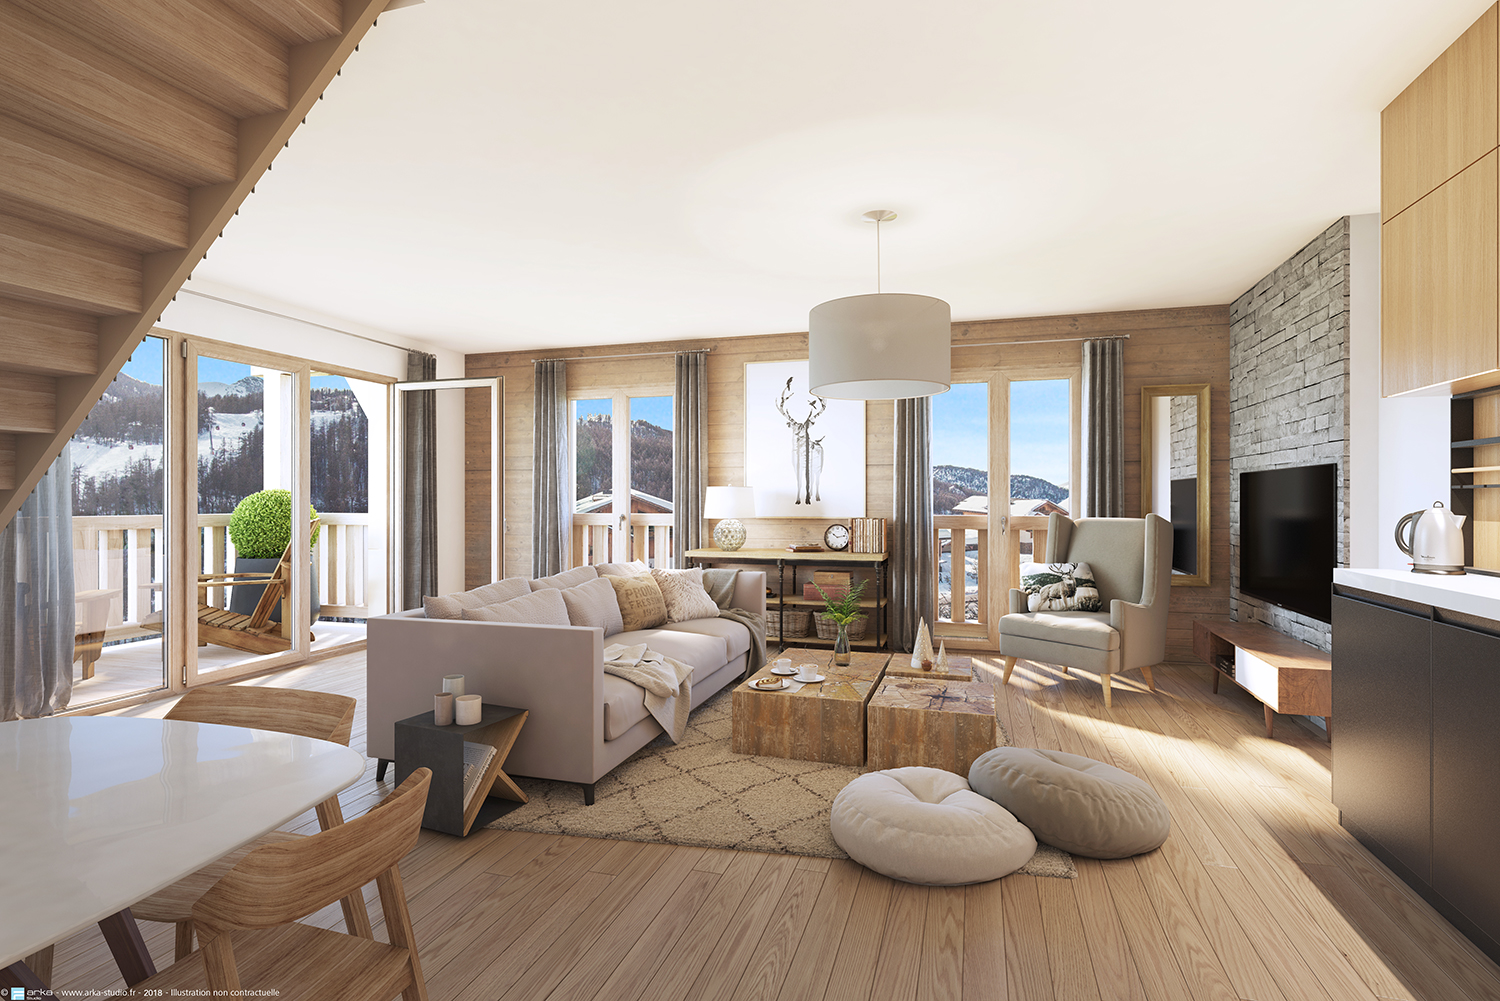 Hotel 4* Serre Chevalier Invest In Serre Chevalier Résidence Cristal Lodge Coming Soon